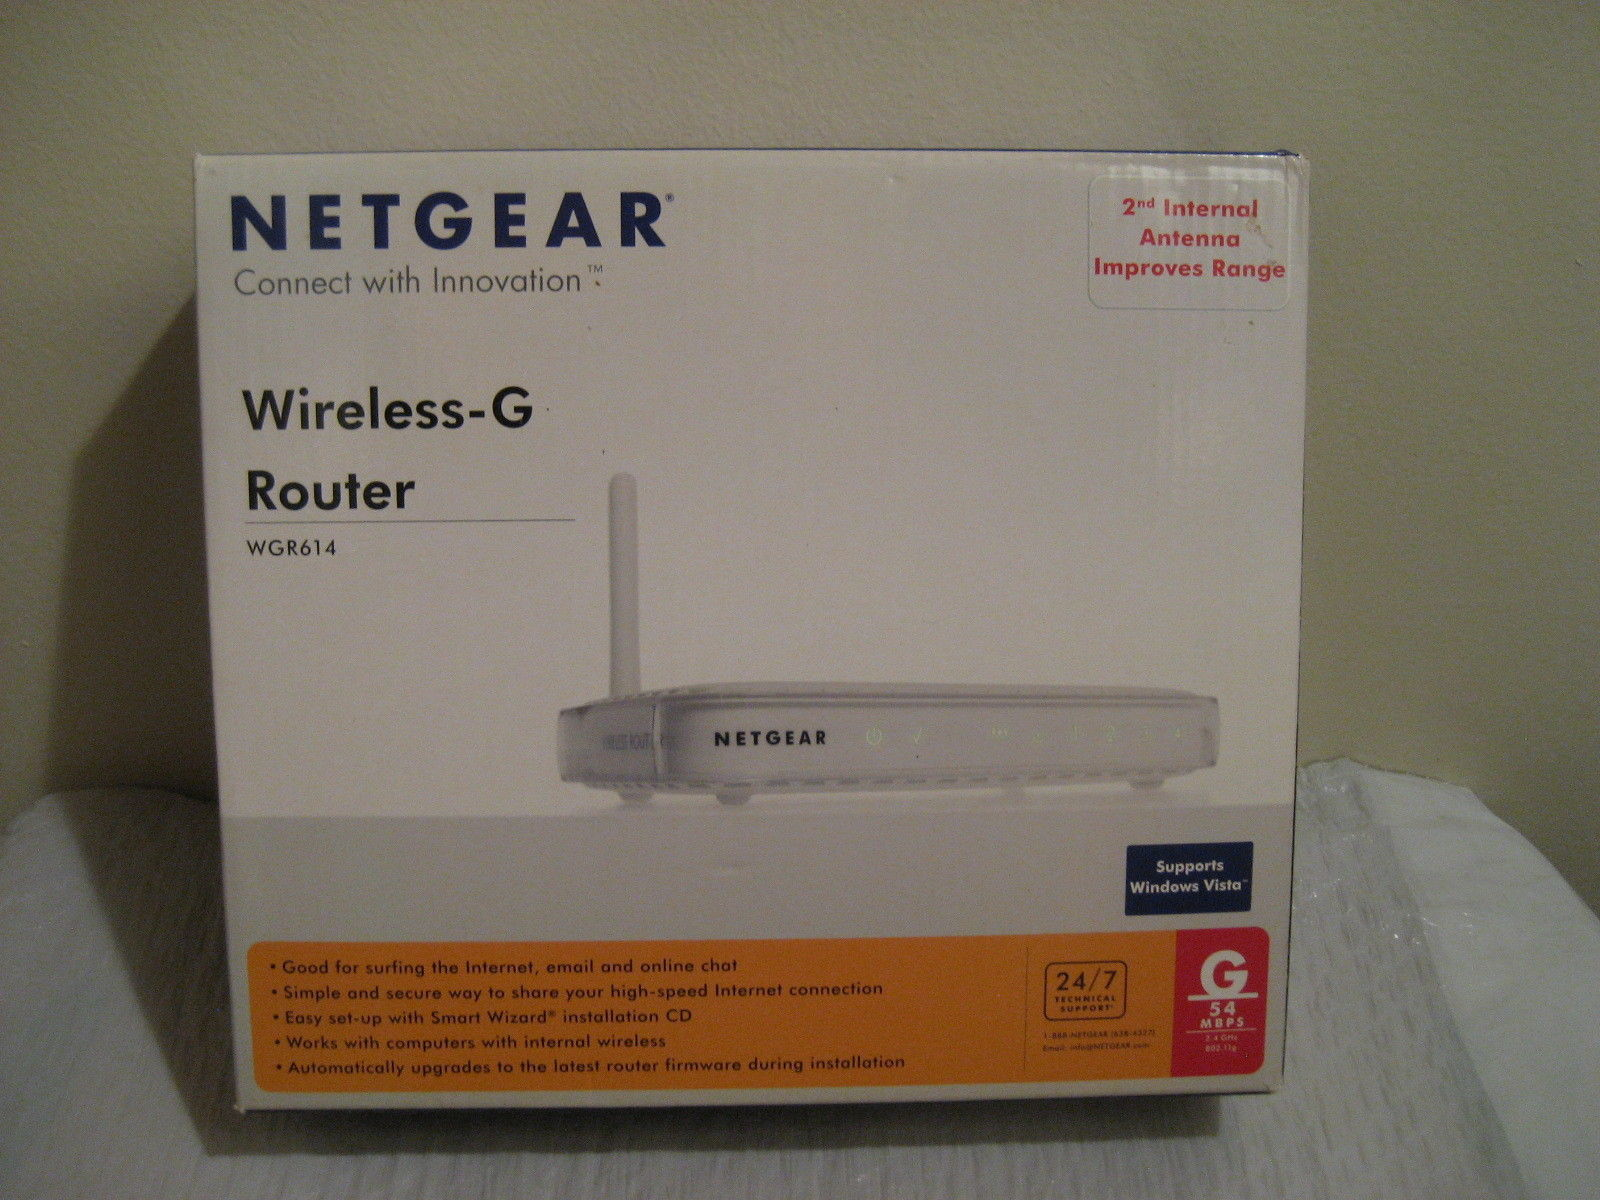 NETGEAR wireless-g router 54mbps #wgr614 and 49 similar items